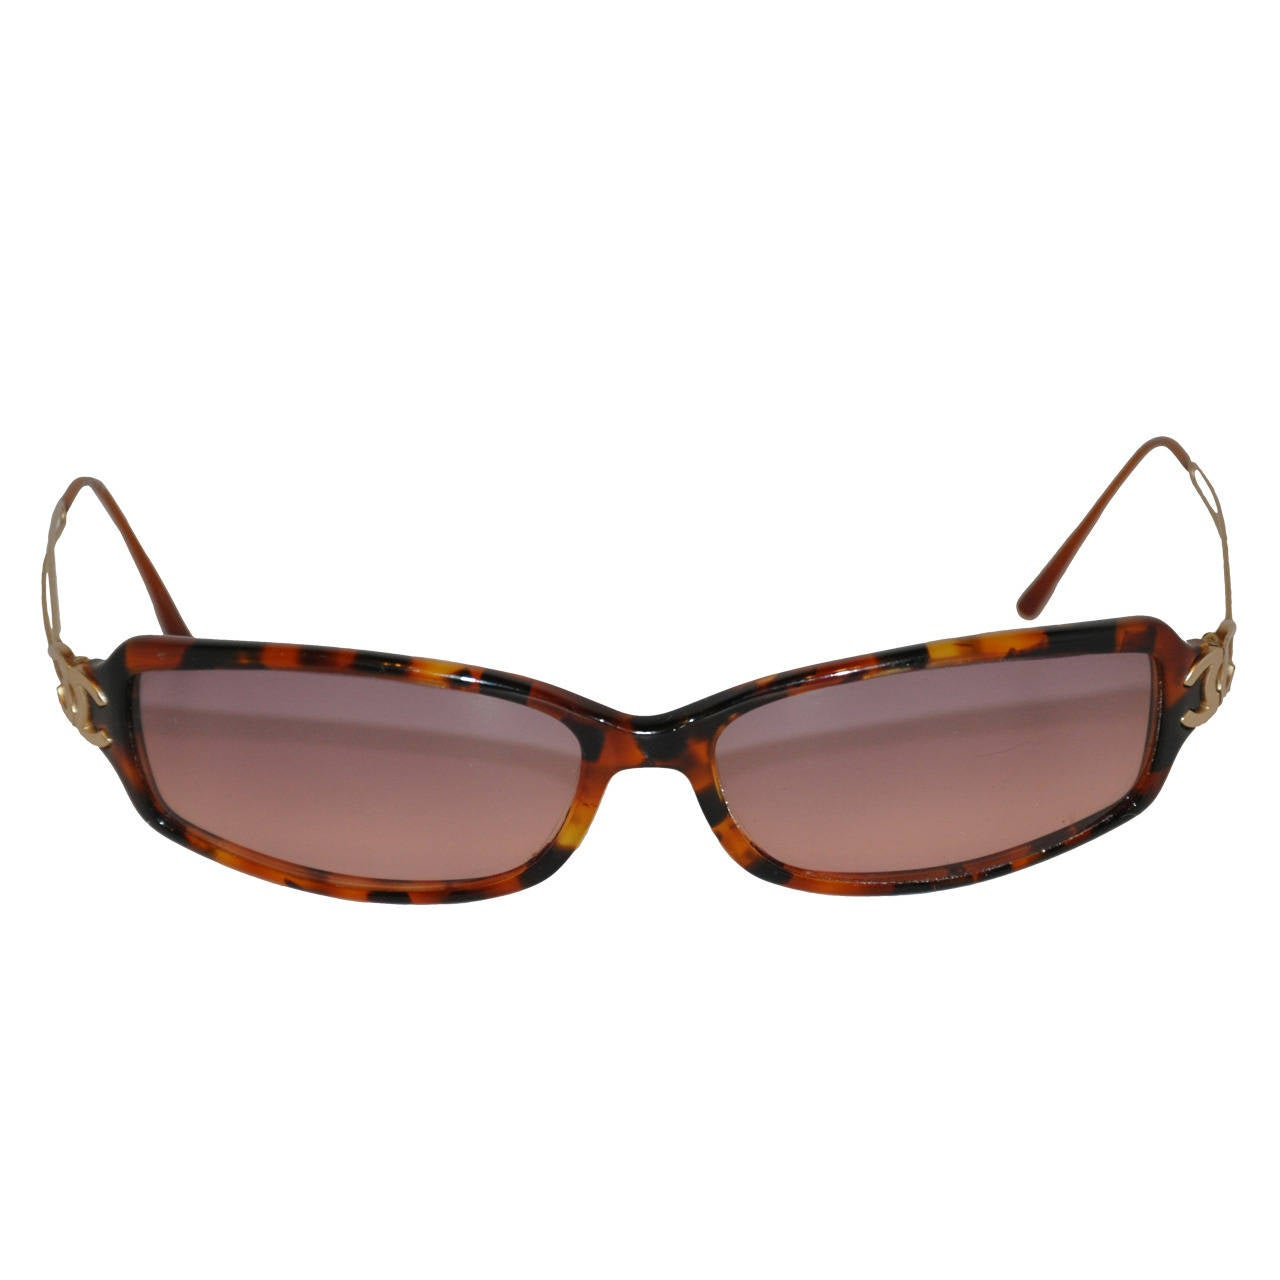 4079b4cd82158 Chanel Tortoise Shell and Gold Signature Logo Sunglasses For Sale at ...